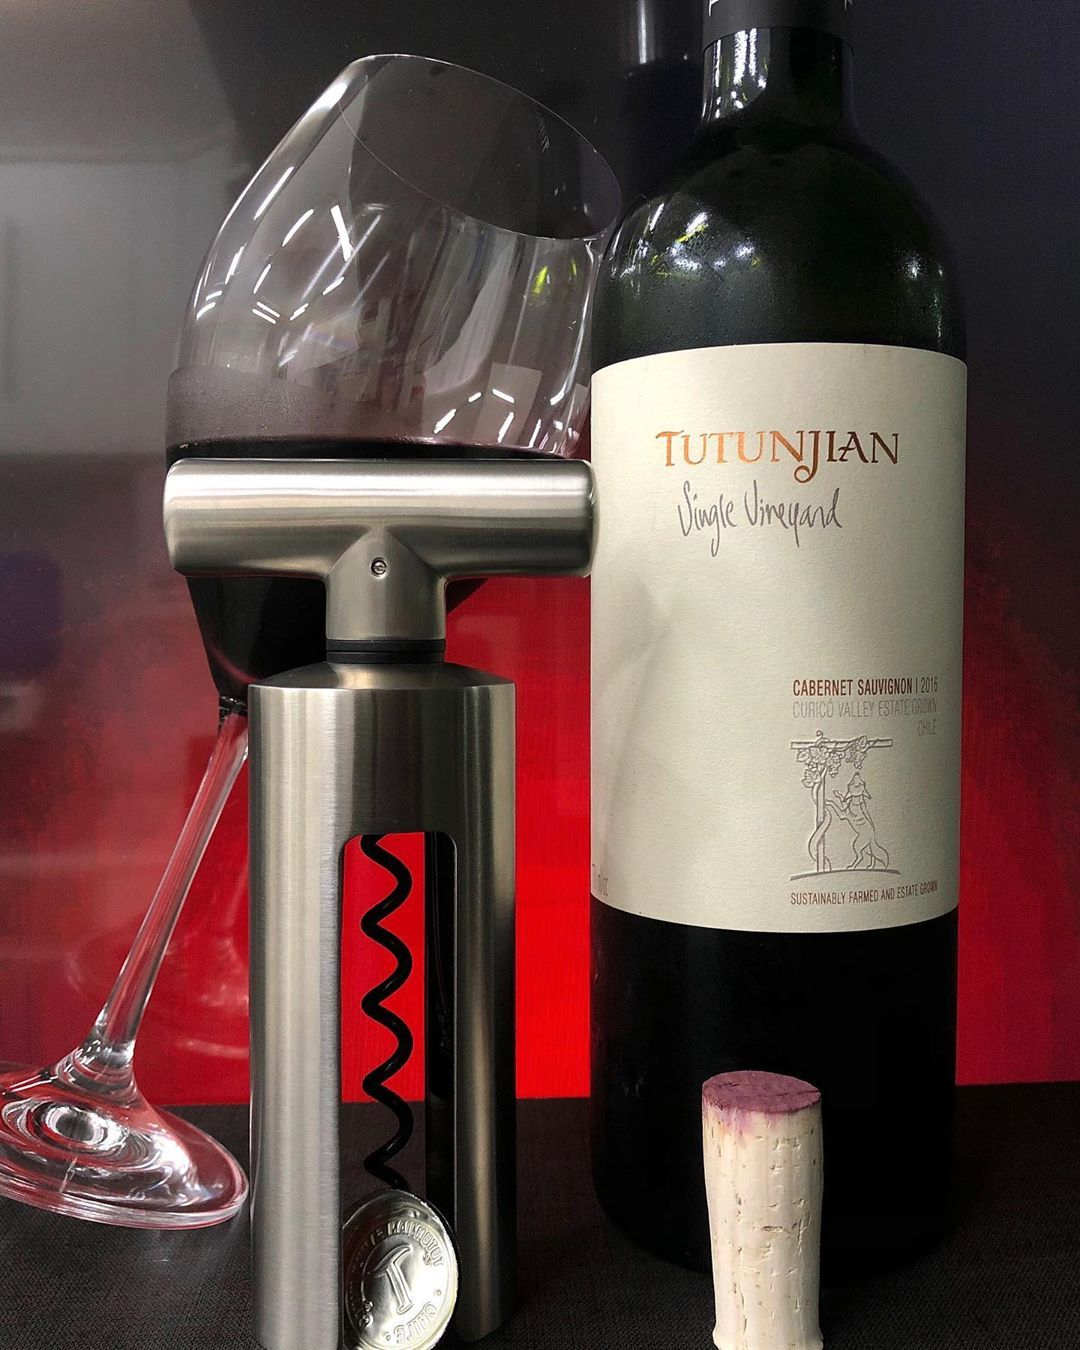 Photo By Mi Taraborelli Brasil Tutunjian Single Vineyards Cabernet Sauvignon 2016 Curico Valley Chile 14 Alc Degustado Em Novembro 2019 De Cor Rub